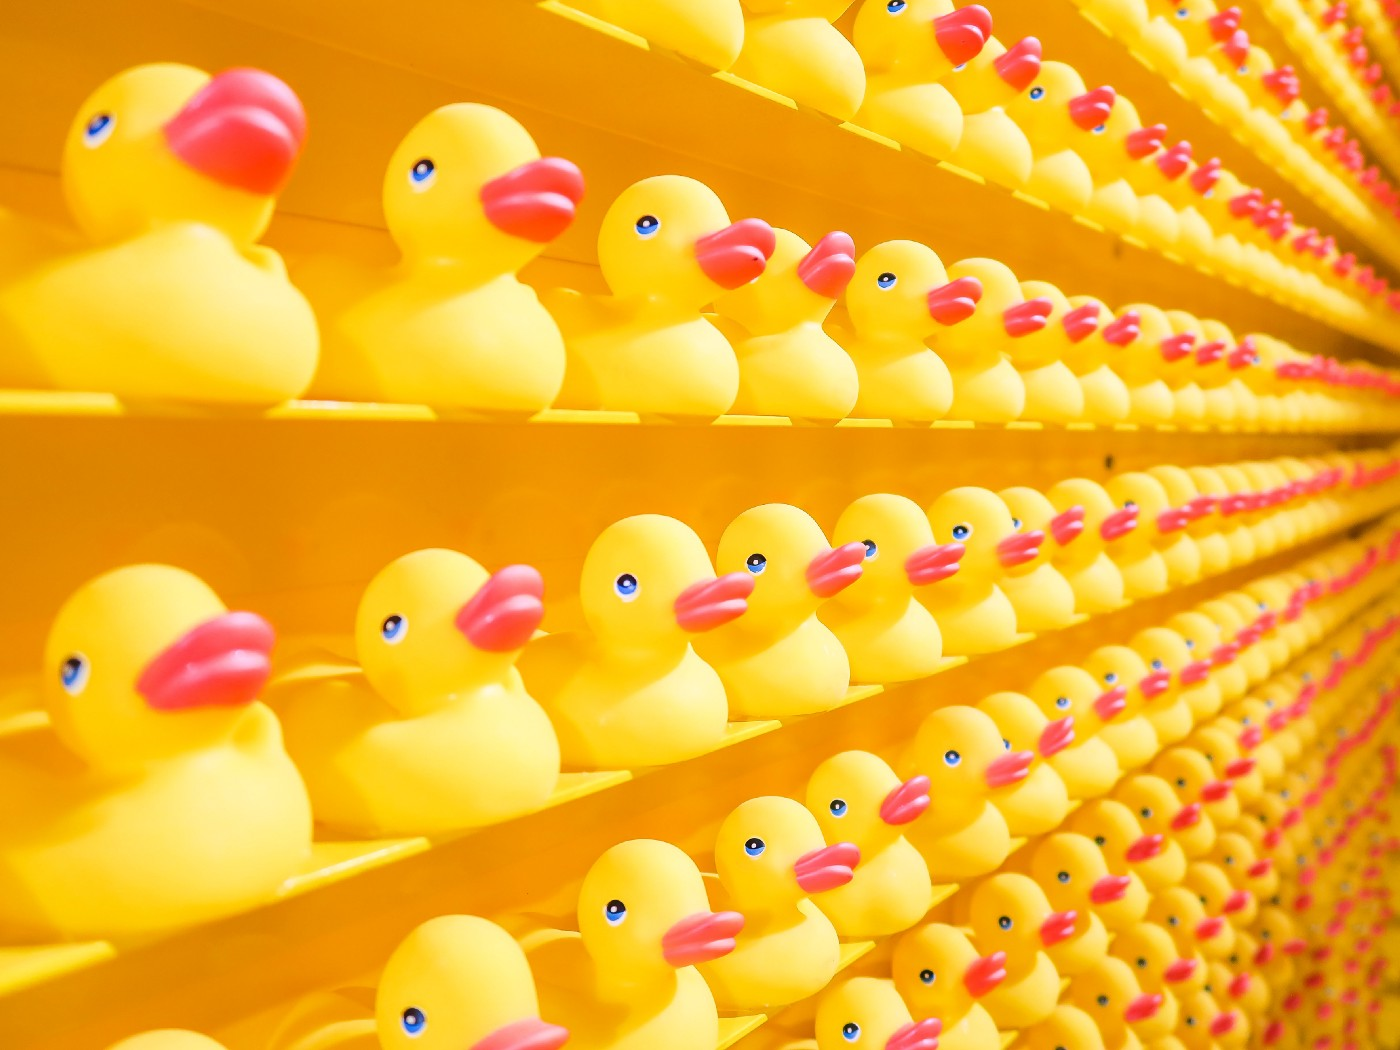 Large shelf full of yellow rubber ducks lined up in rows